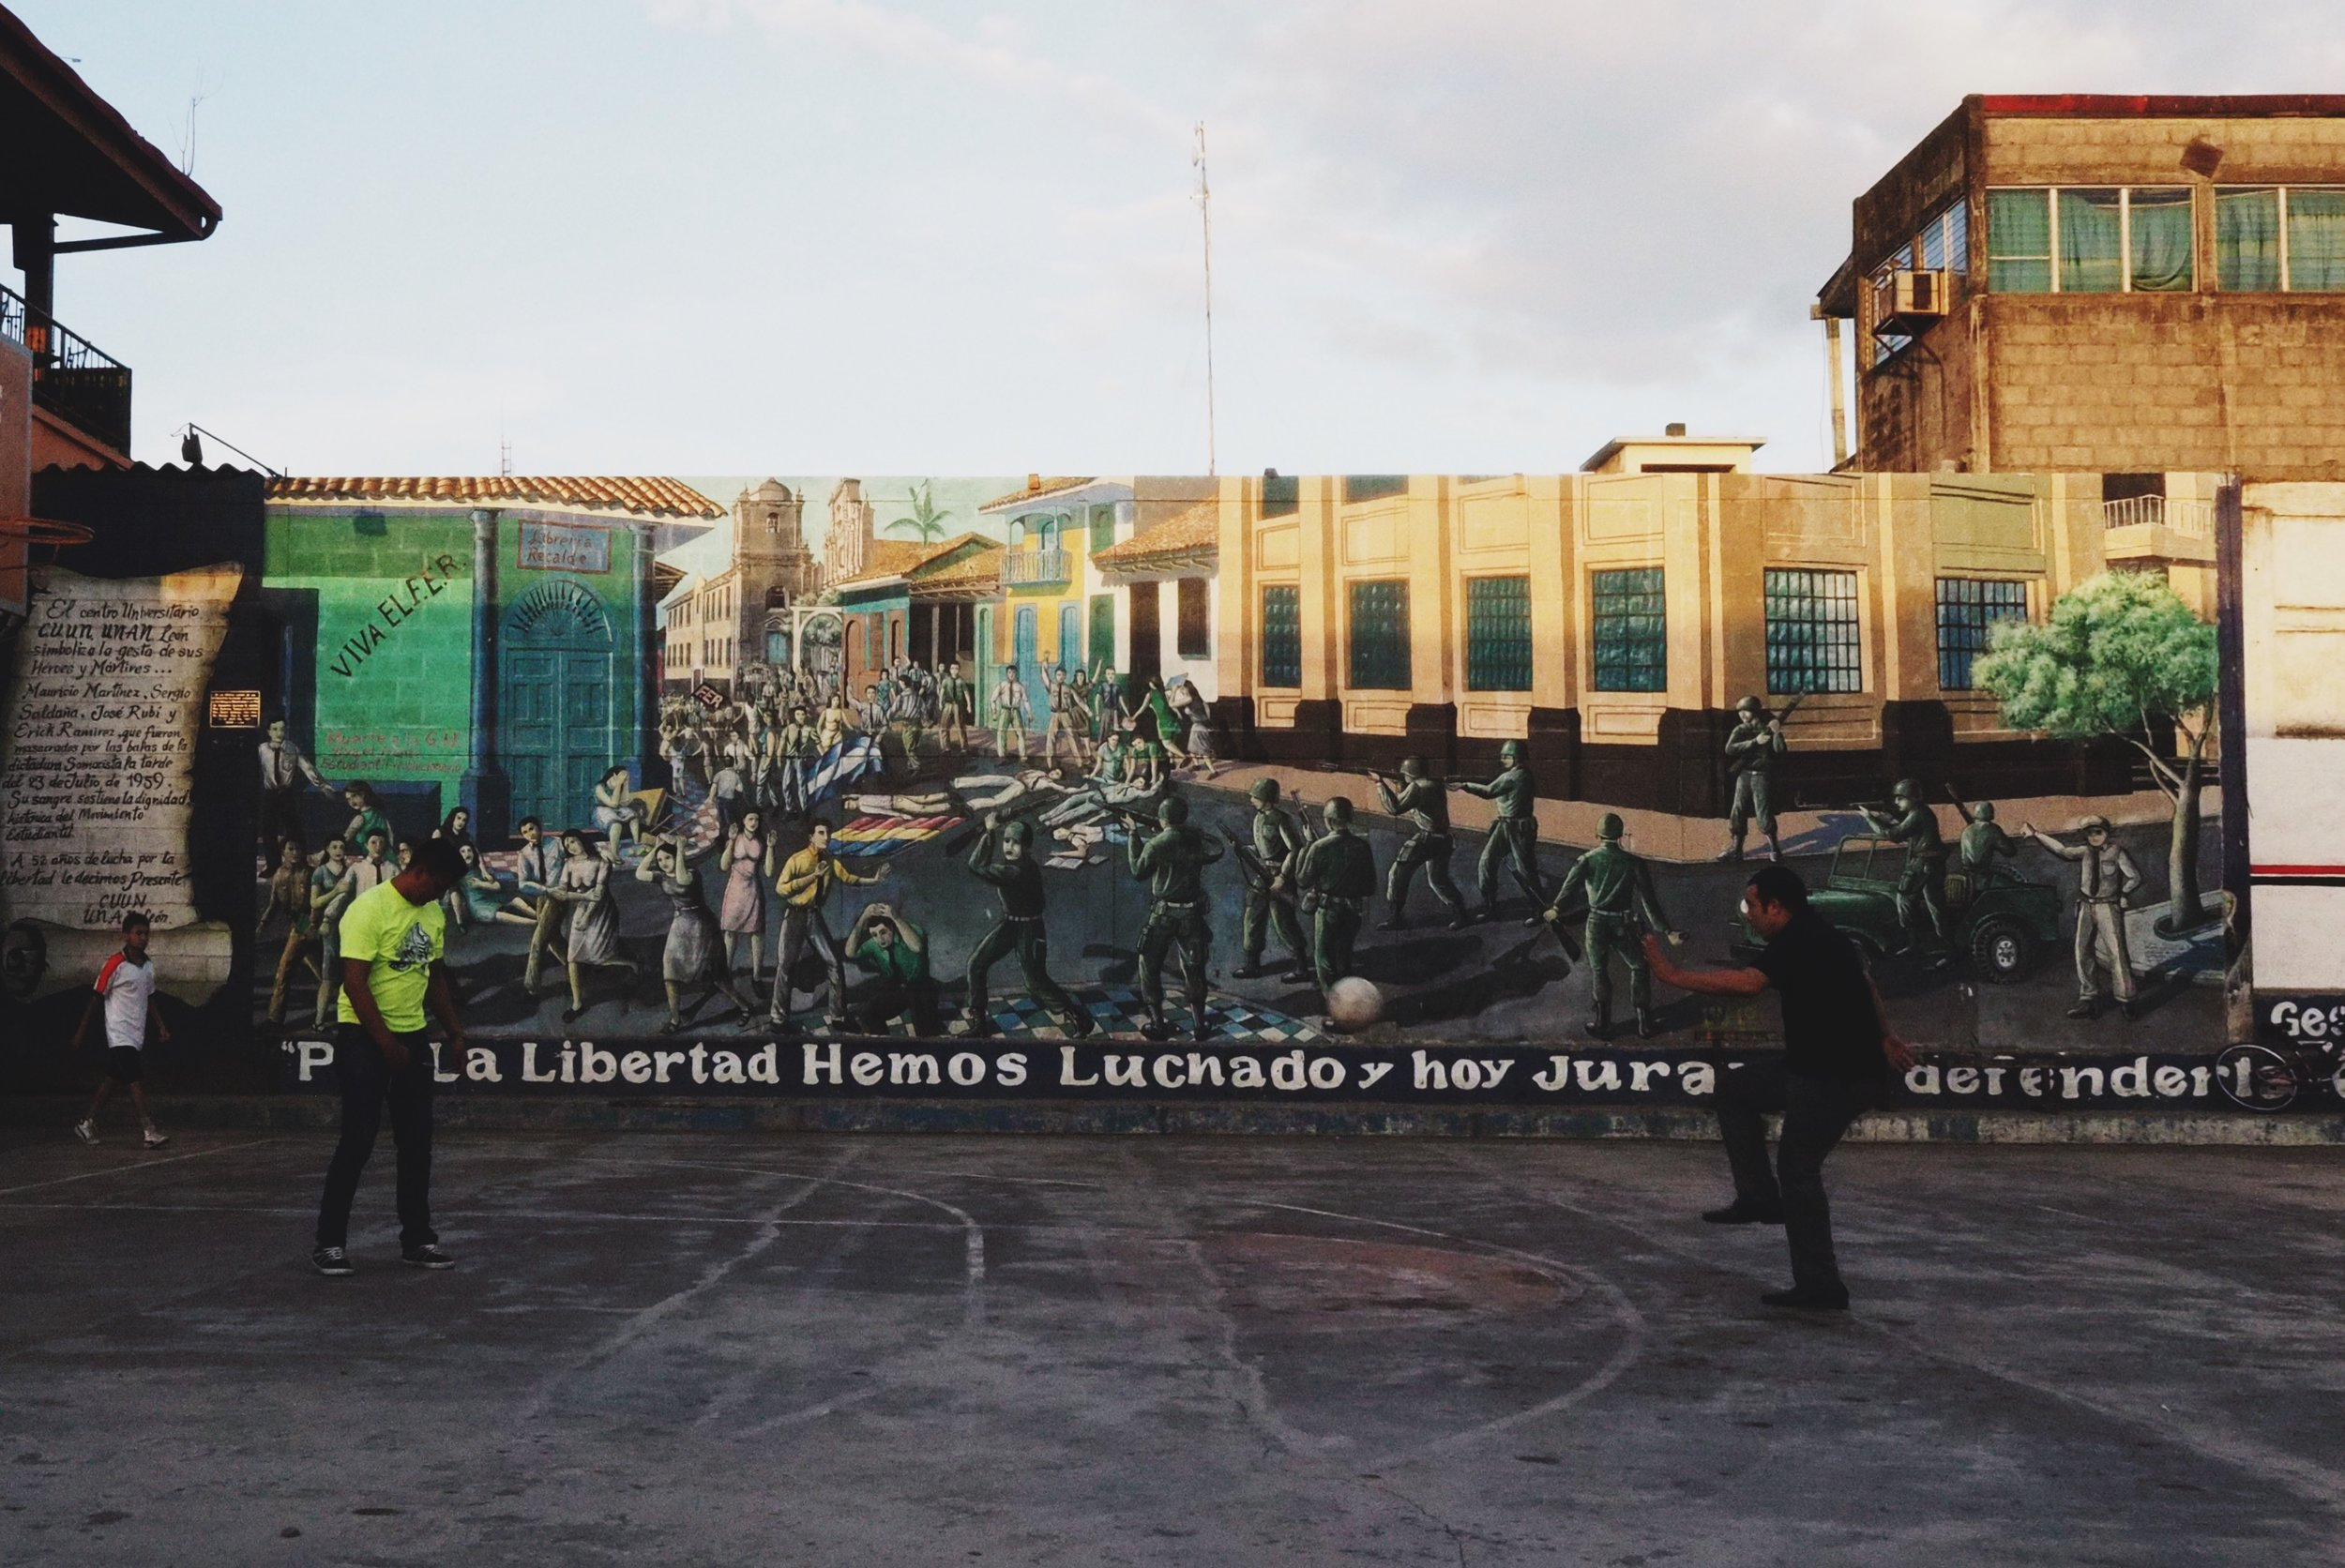 """Two young guys playing fútbol - the mural in the background reads """"para la libertad hemos luchado y hoy juras de defenderla."""" """"For liberty we have fought and today you swear to defend it"""""""